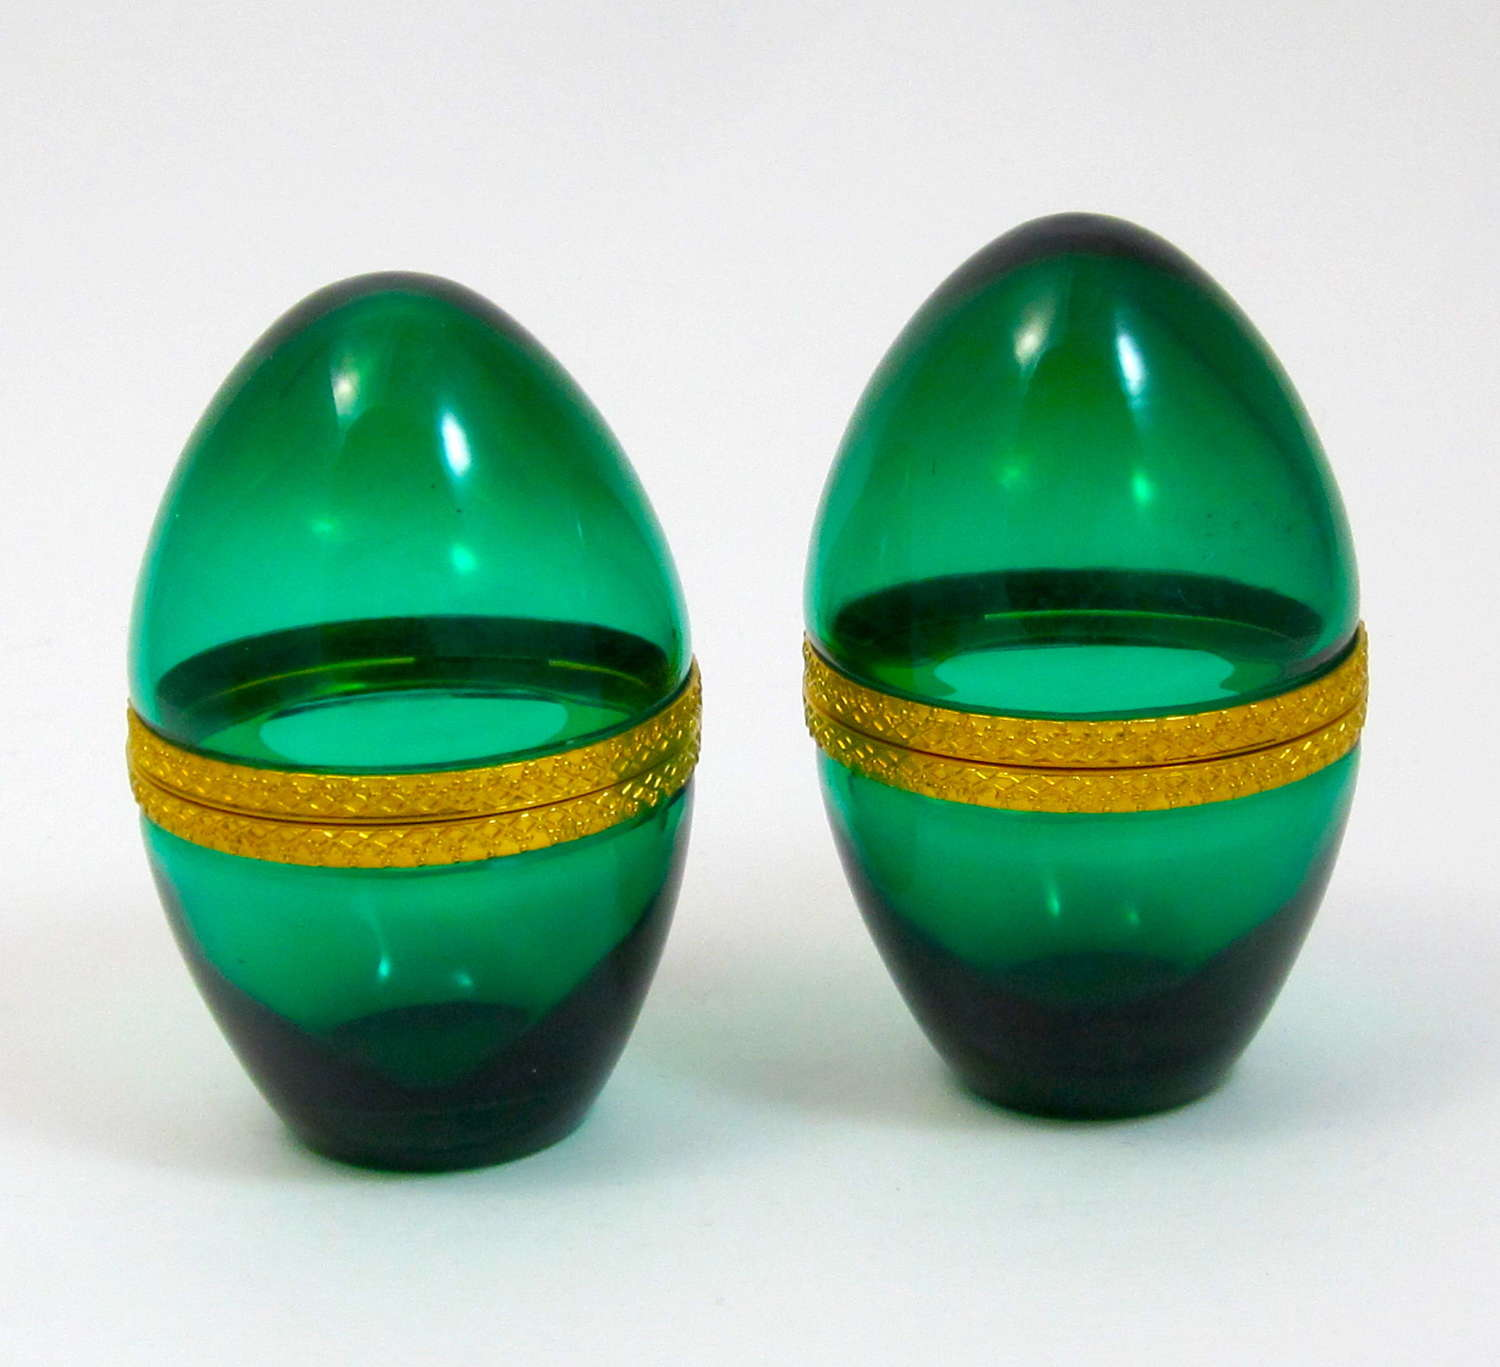 A Pair of Antique Emerald Green Glass Egg Box Caskets